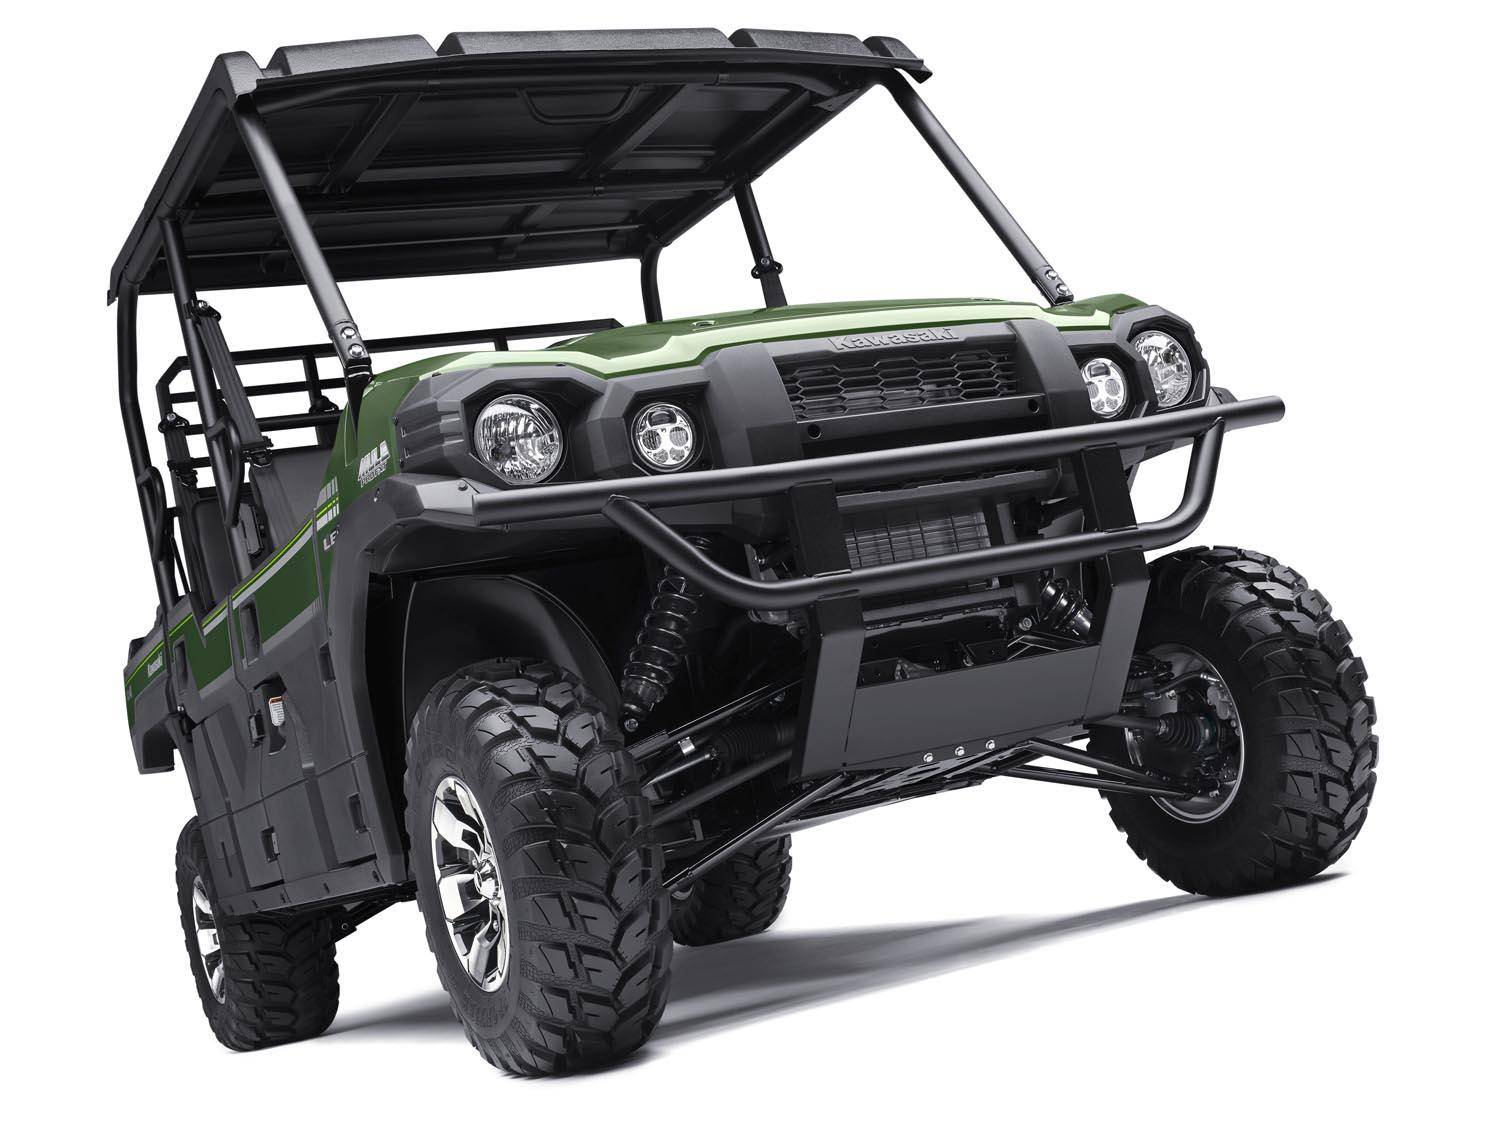 2015 Kawasaki Mule PRO-FXT™ EPS LE in North Reading, Massachusetts - Photo 6